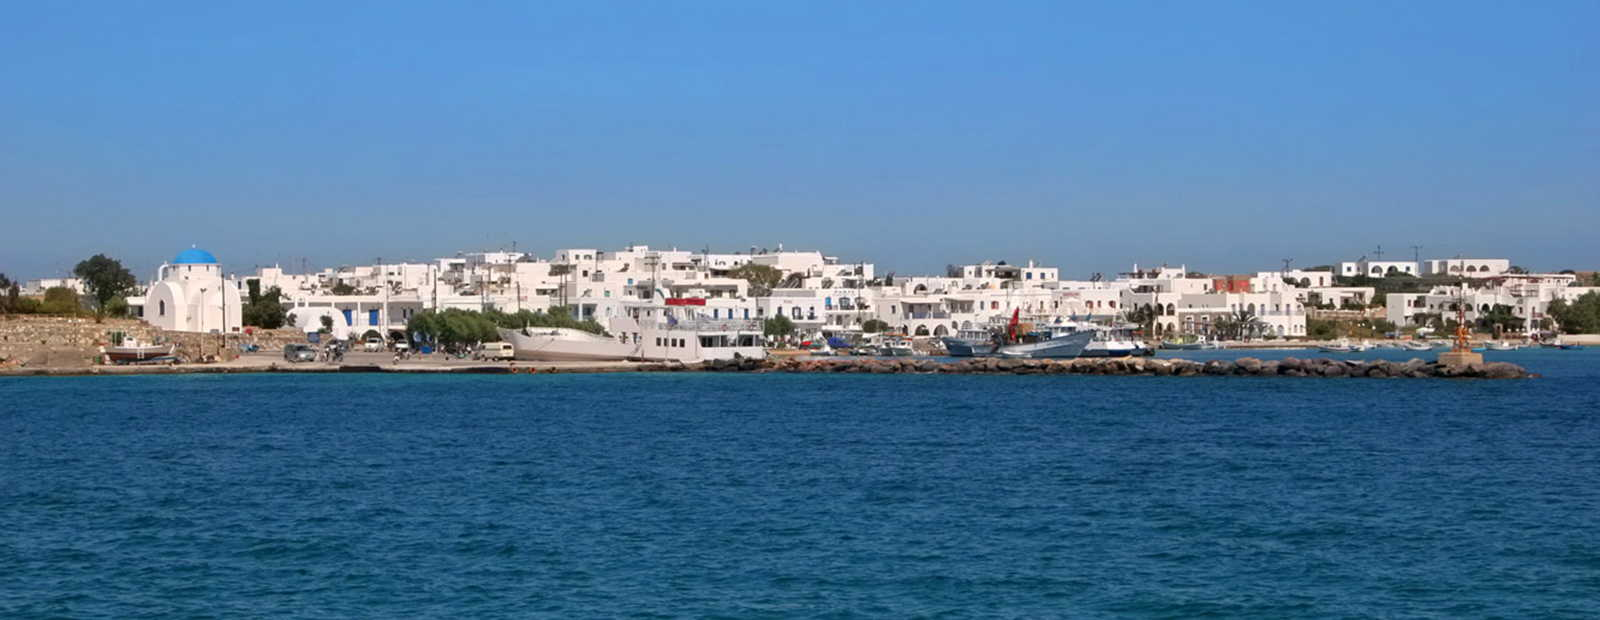 Exclusive holiday villas in Antiparos